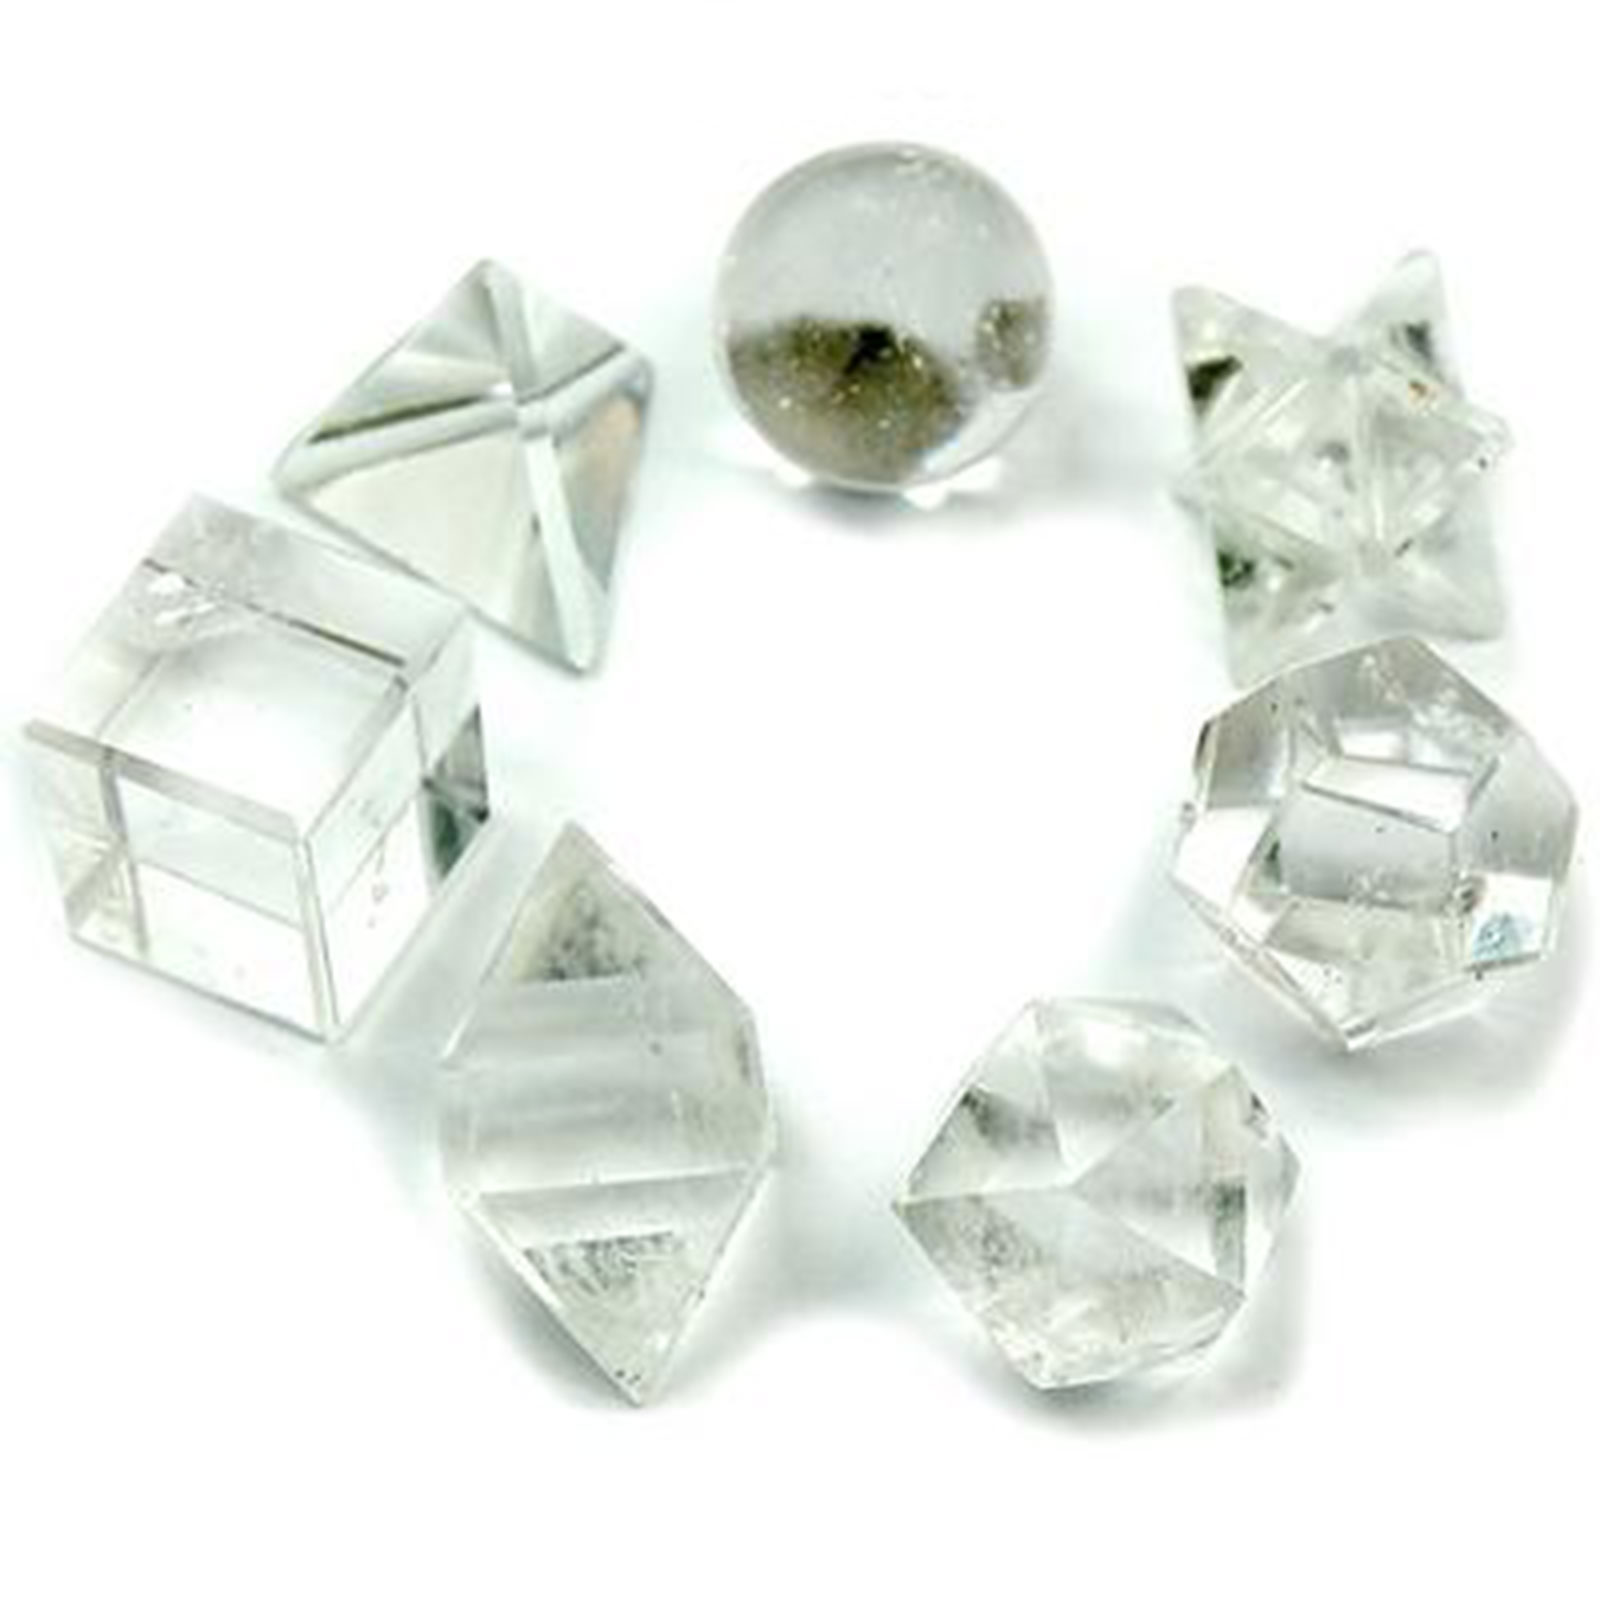 Geometric Seven Piece Crystal Set